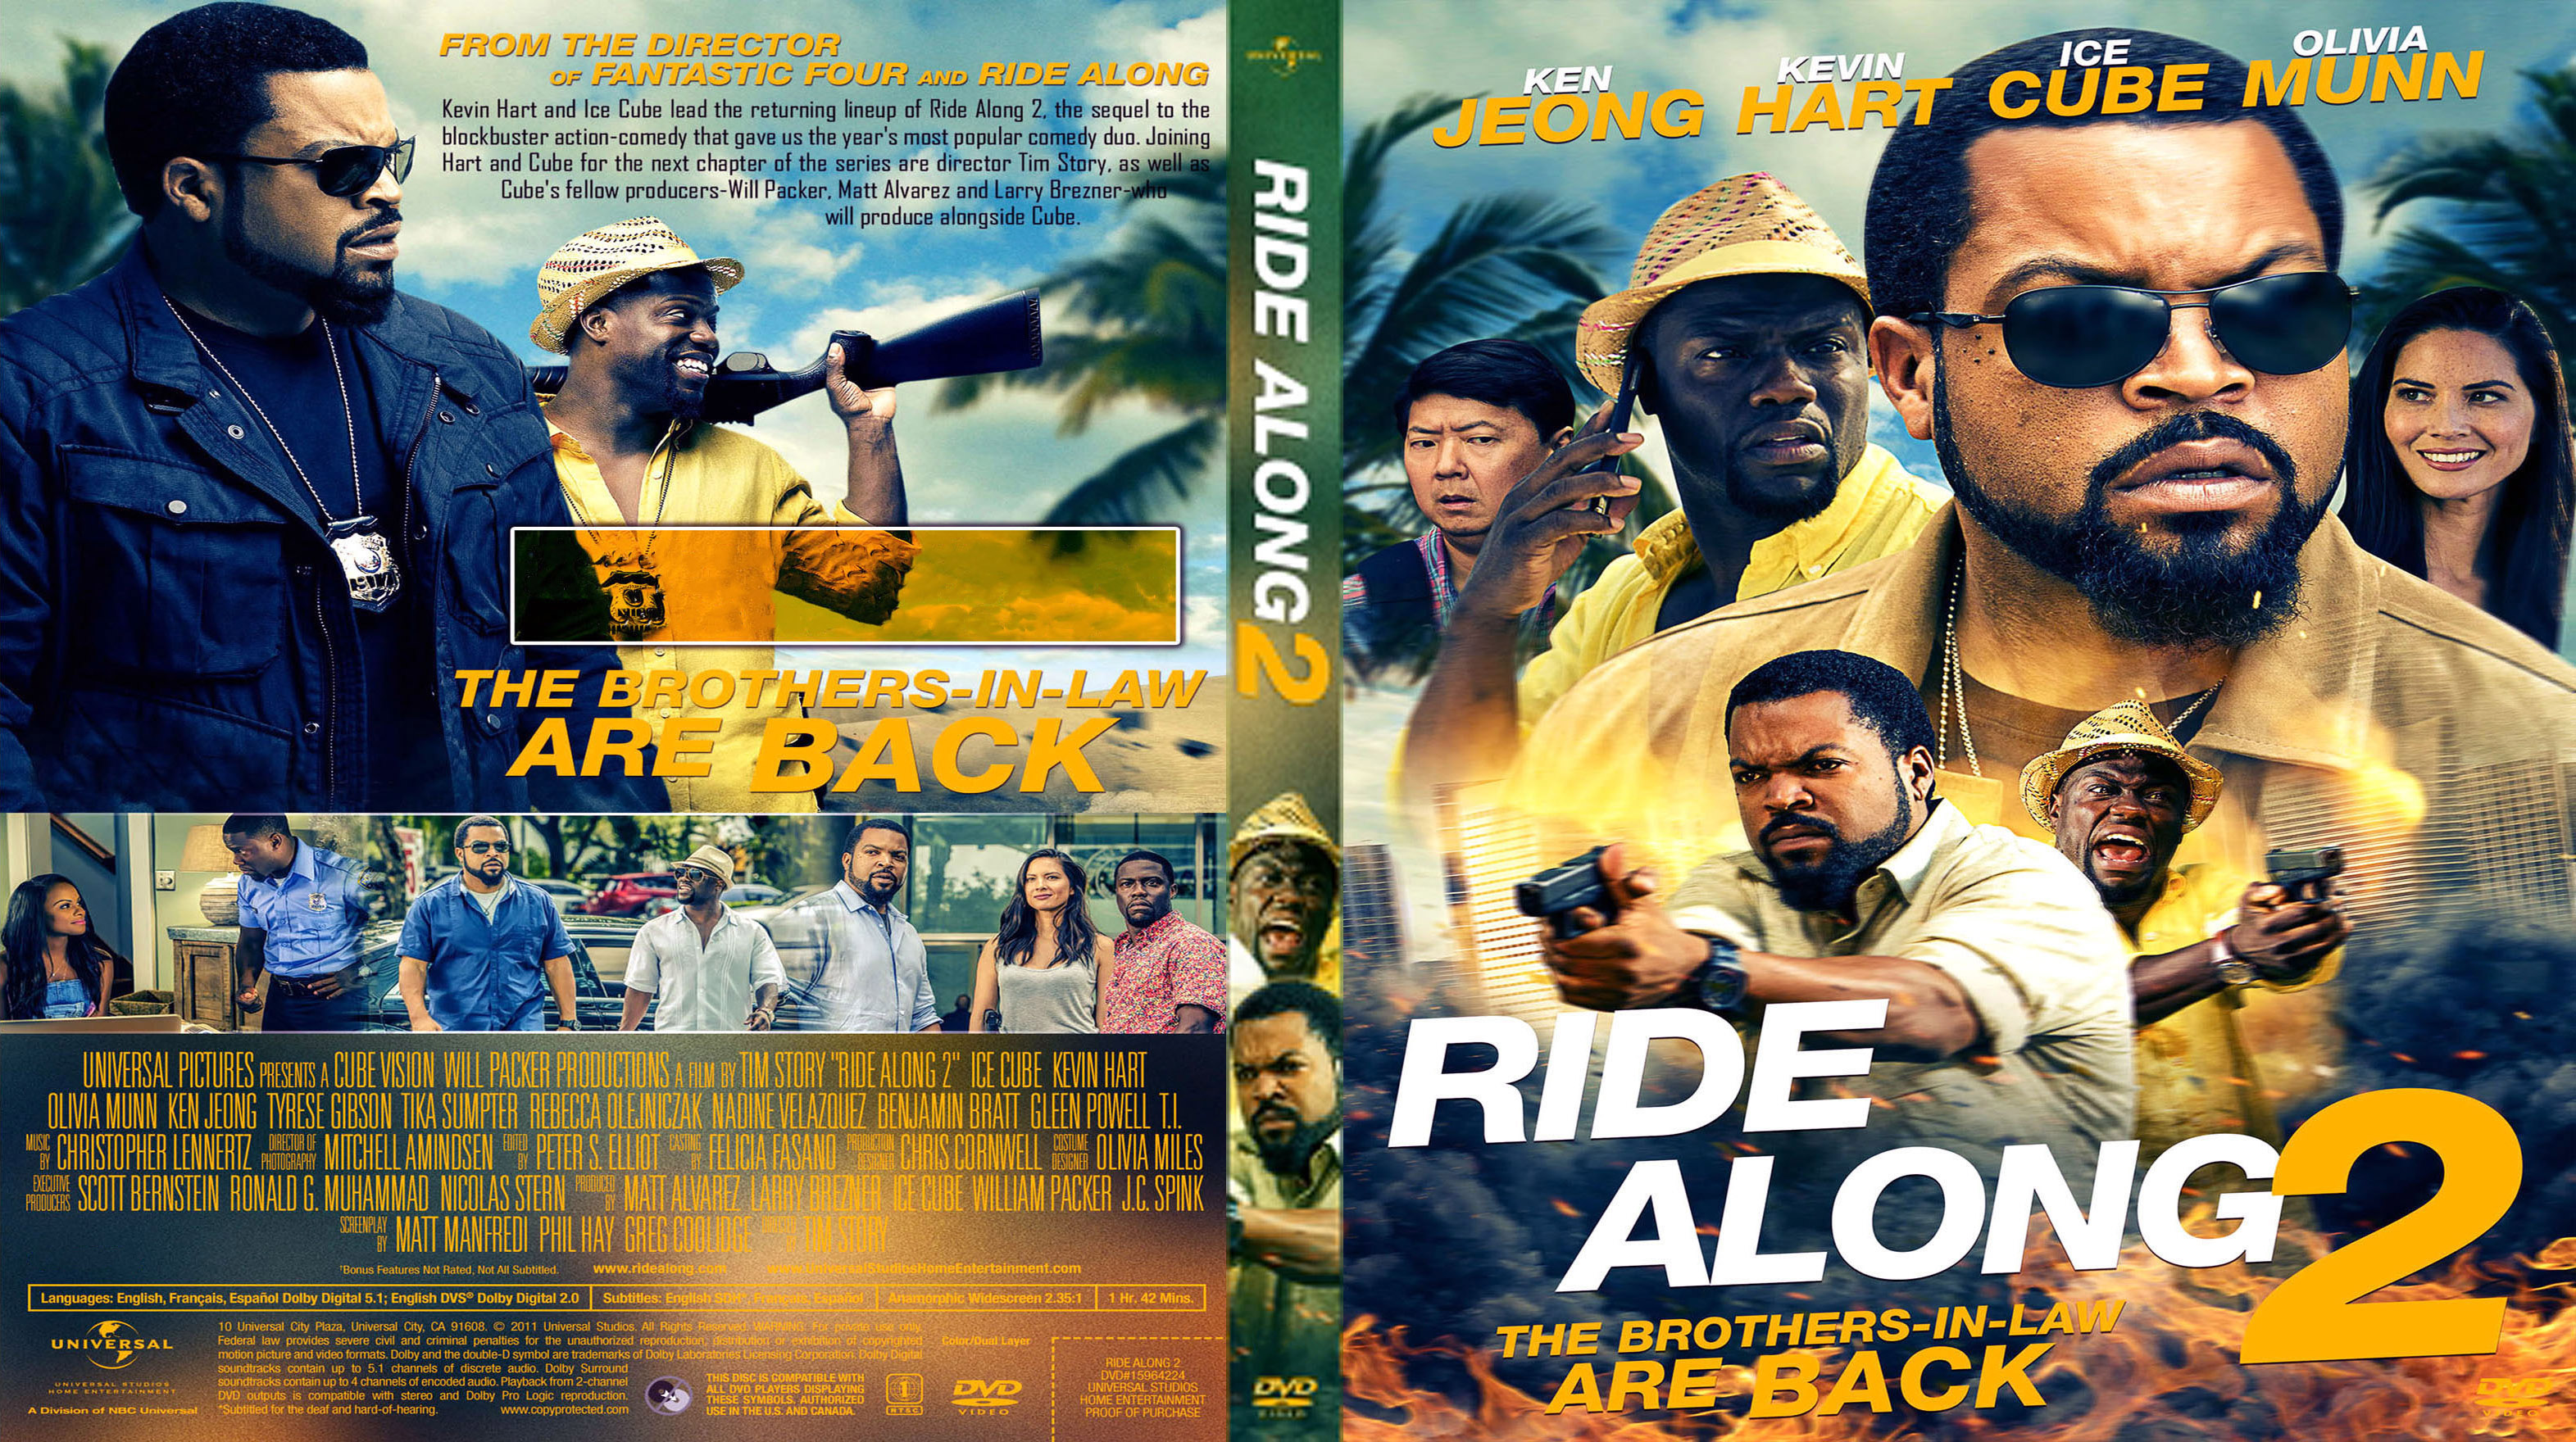 ride along 2016 custom dvd cover dvd covers cover century over